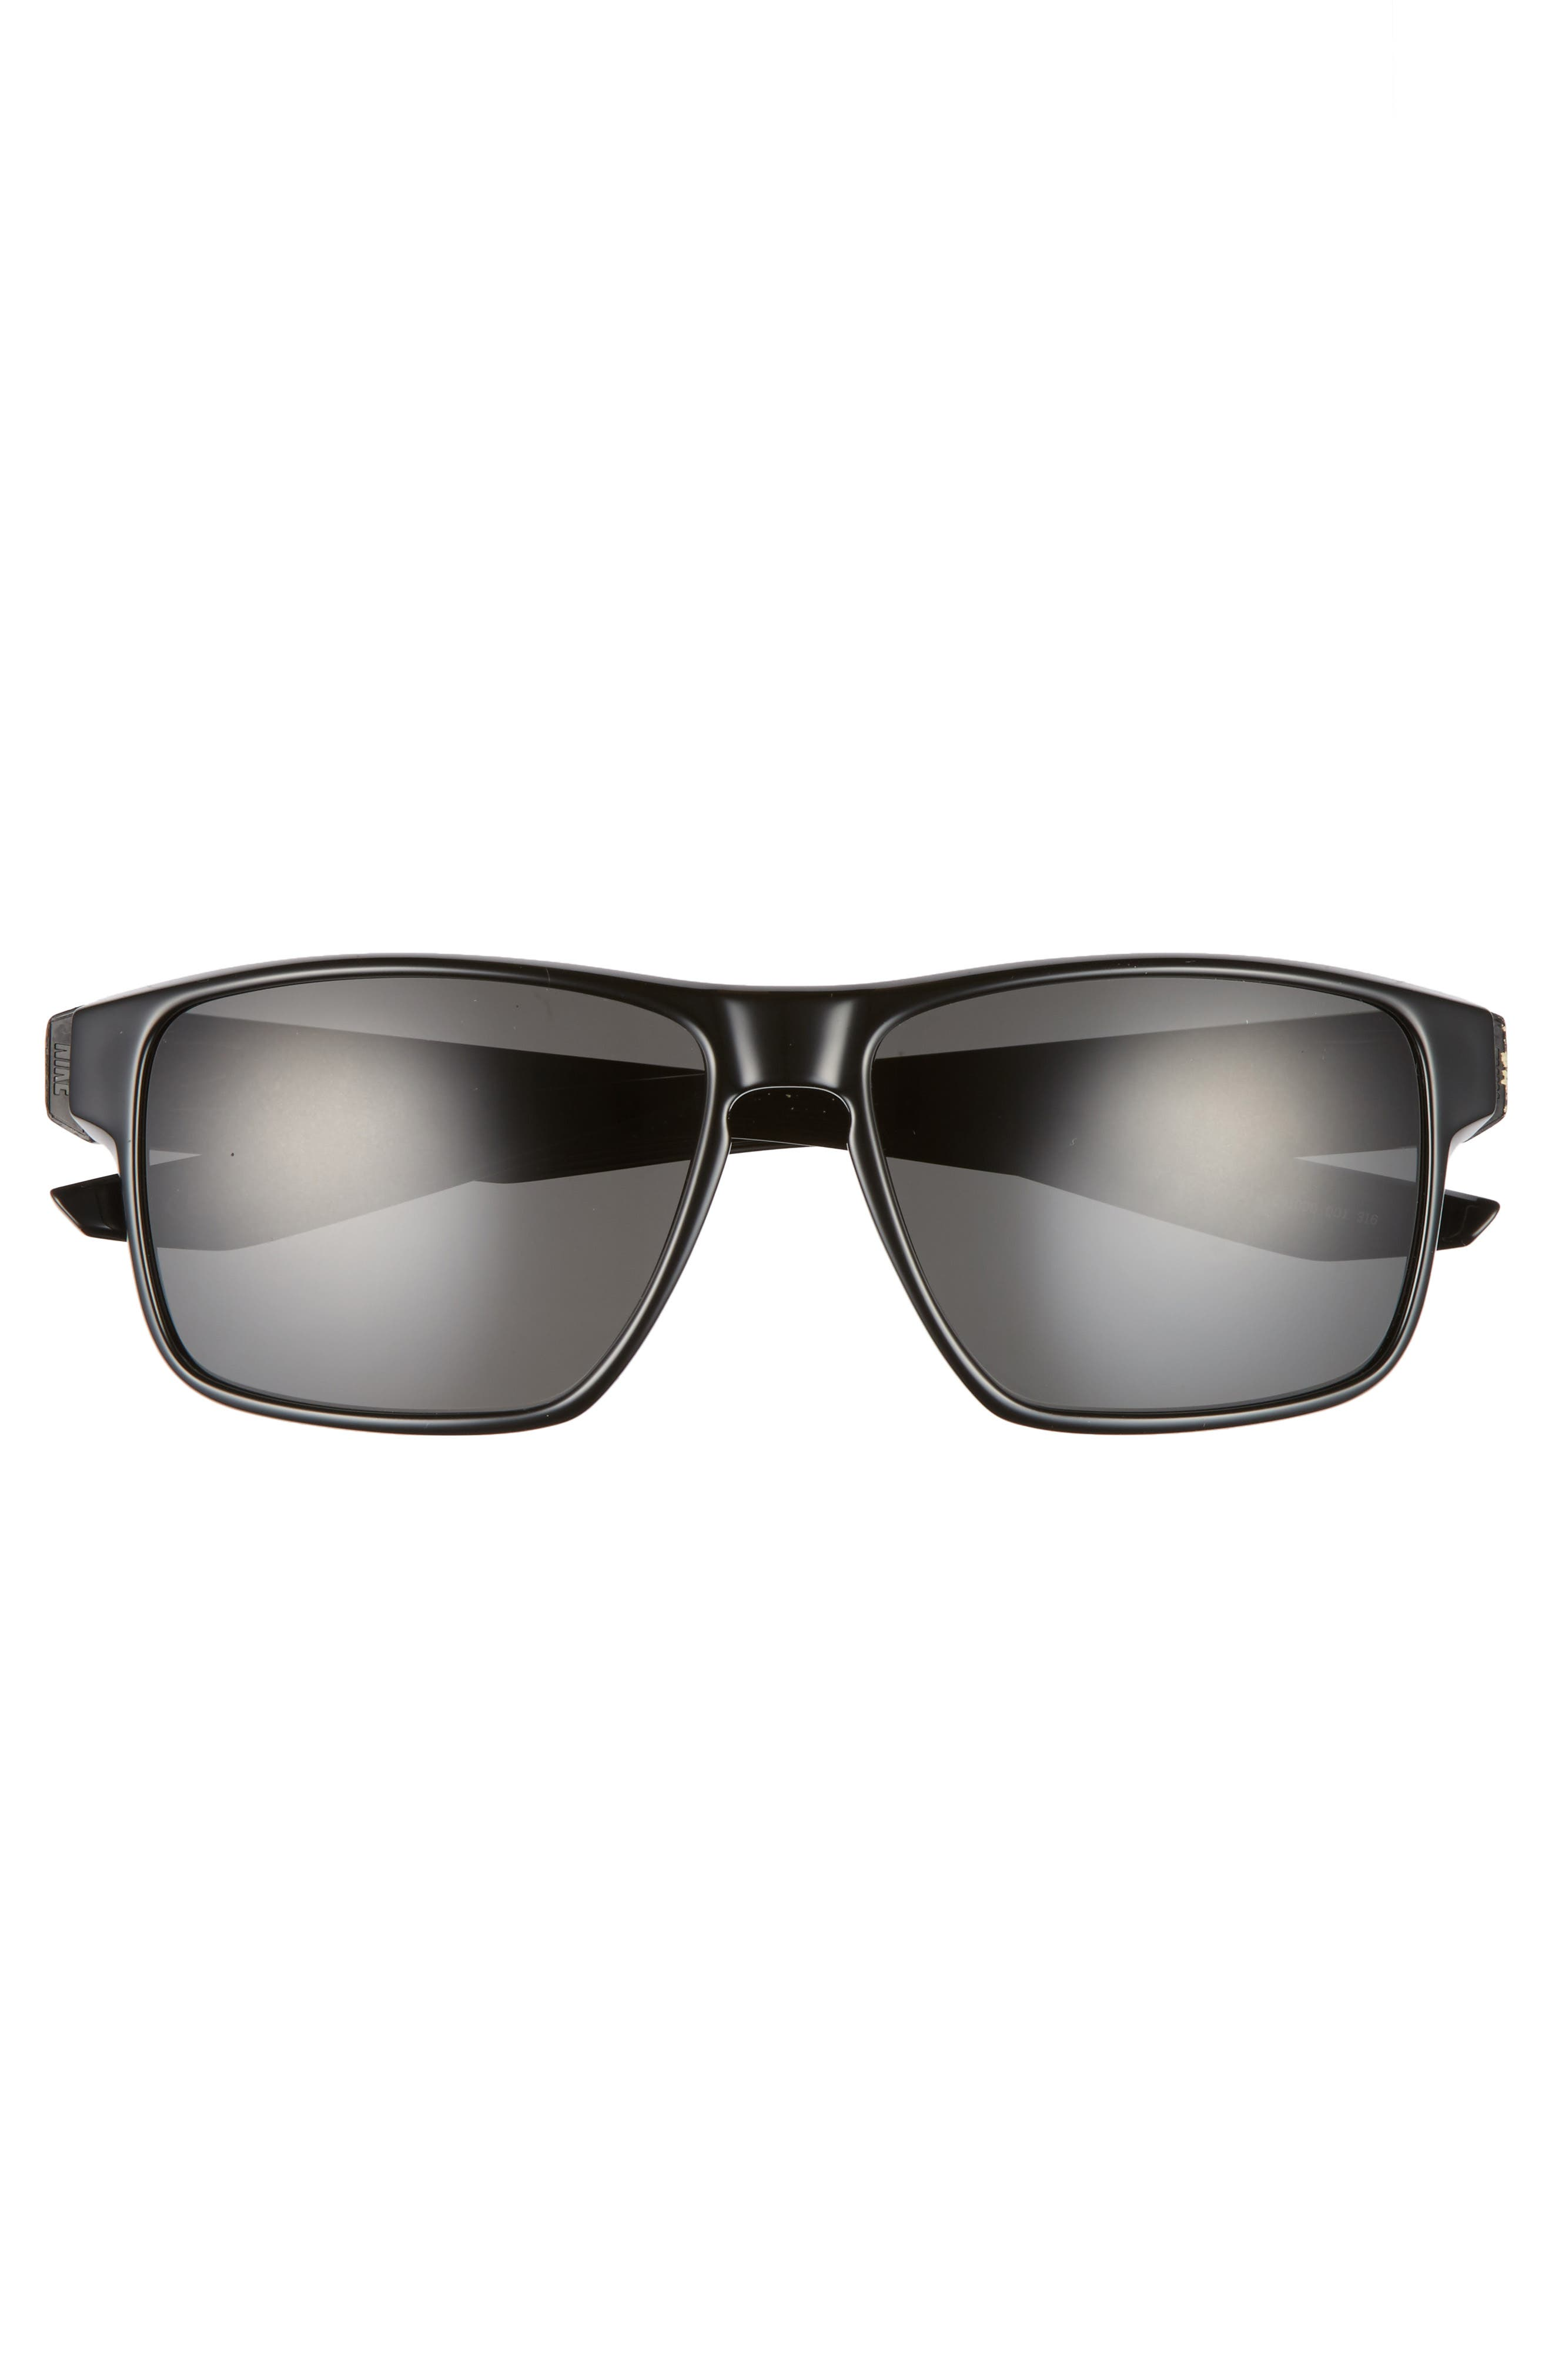 NIKE, Essential Venture 59mm Polarized Sport Sunglasses, Alternate thumbnail 2, color, MATTE BLACK